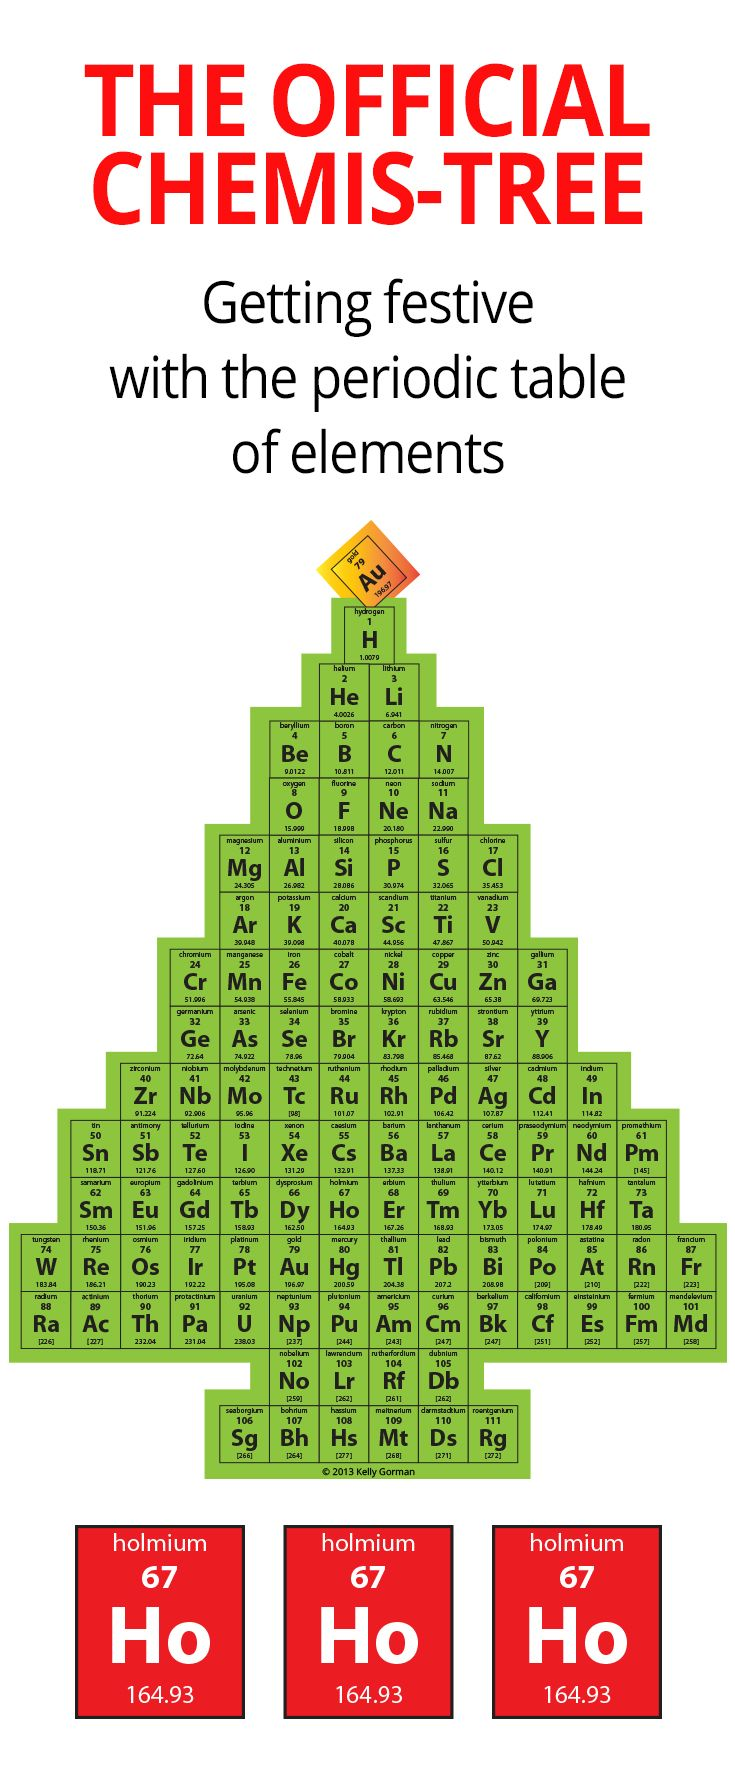 Christmas fun with the periodic table of elements. The